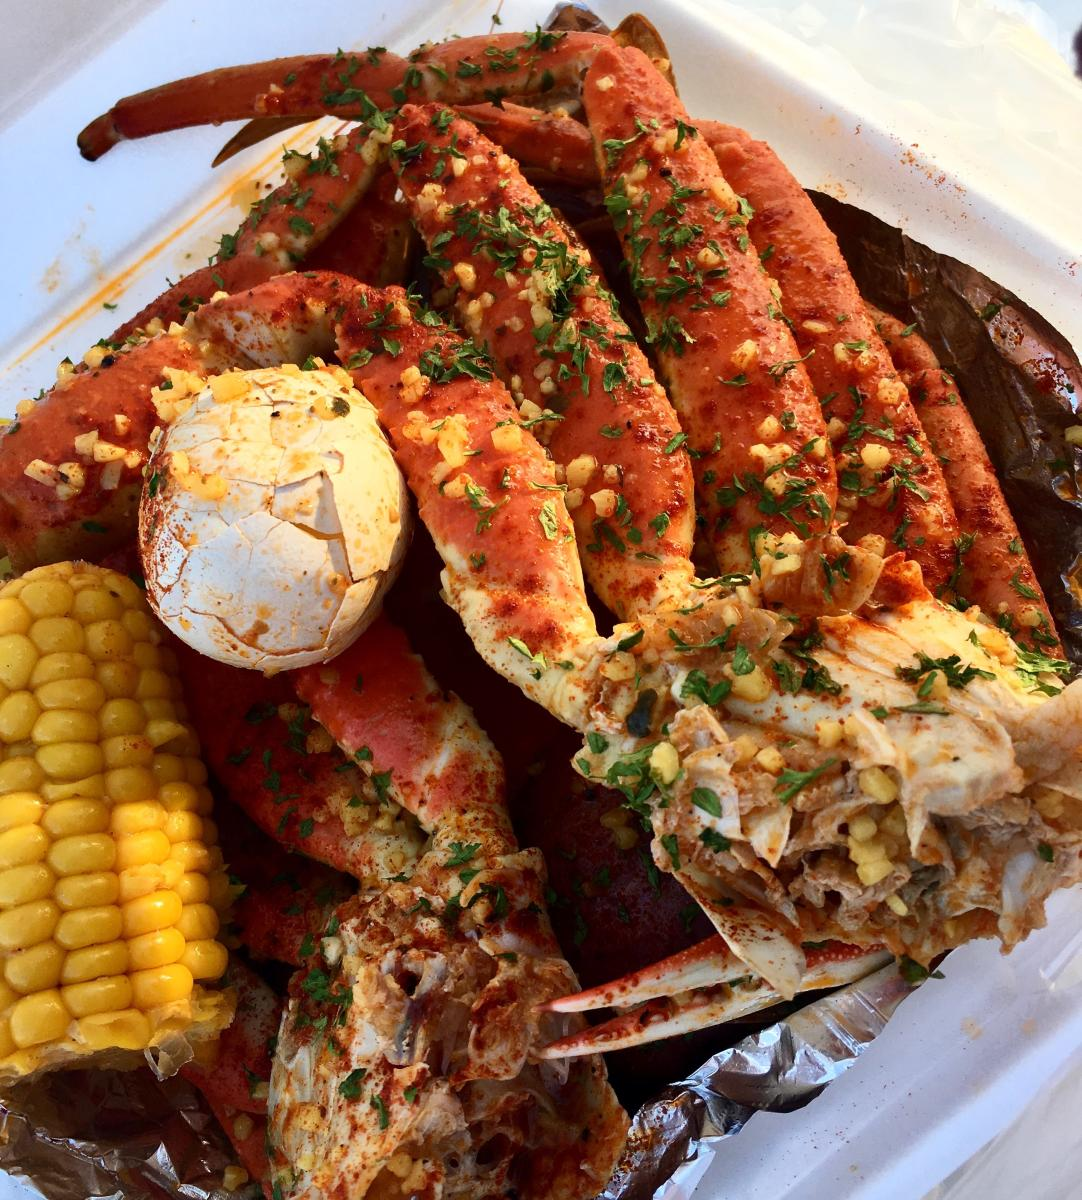 A full plate is served at Crustaceans Boil House in Beaumont.